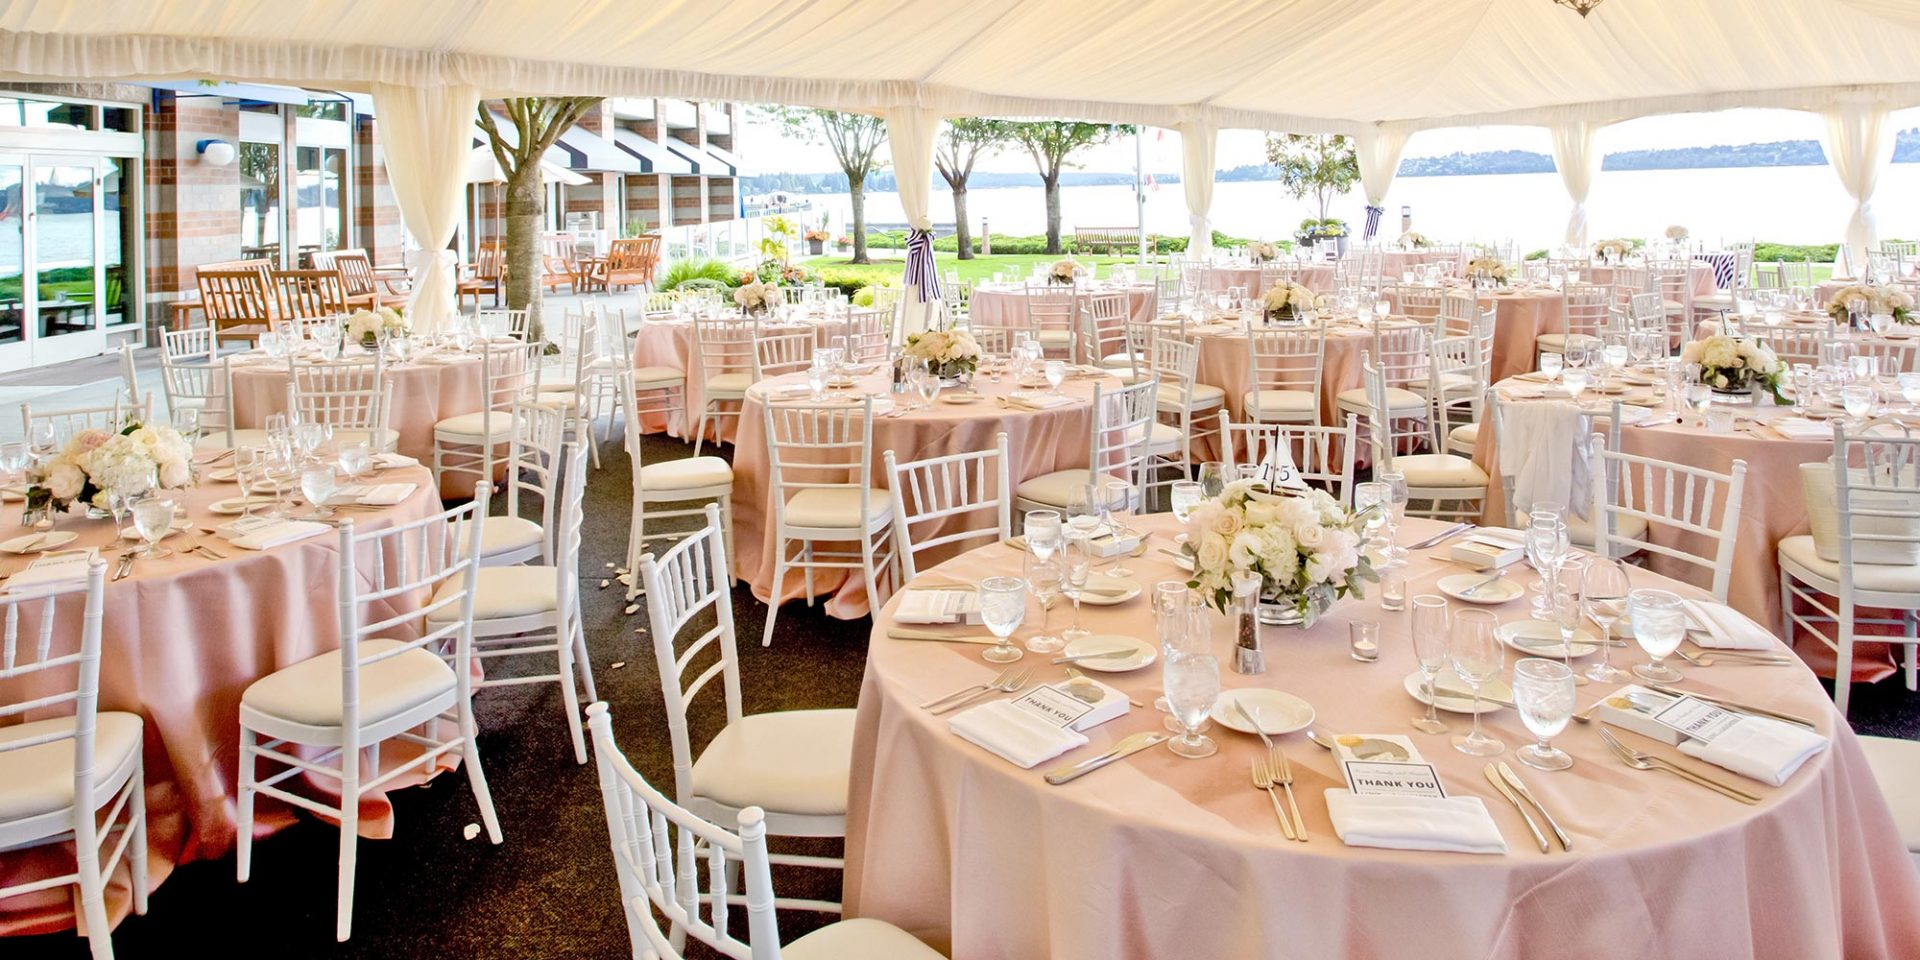 Wedding Reception Venue What To Choose For Your Big Day